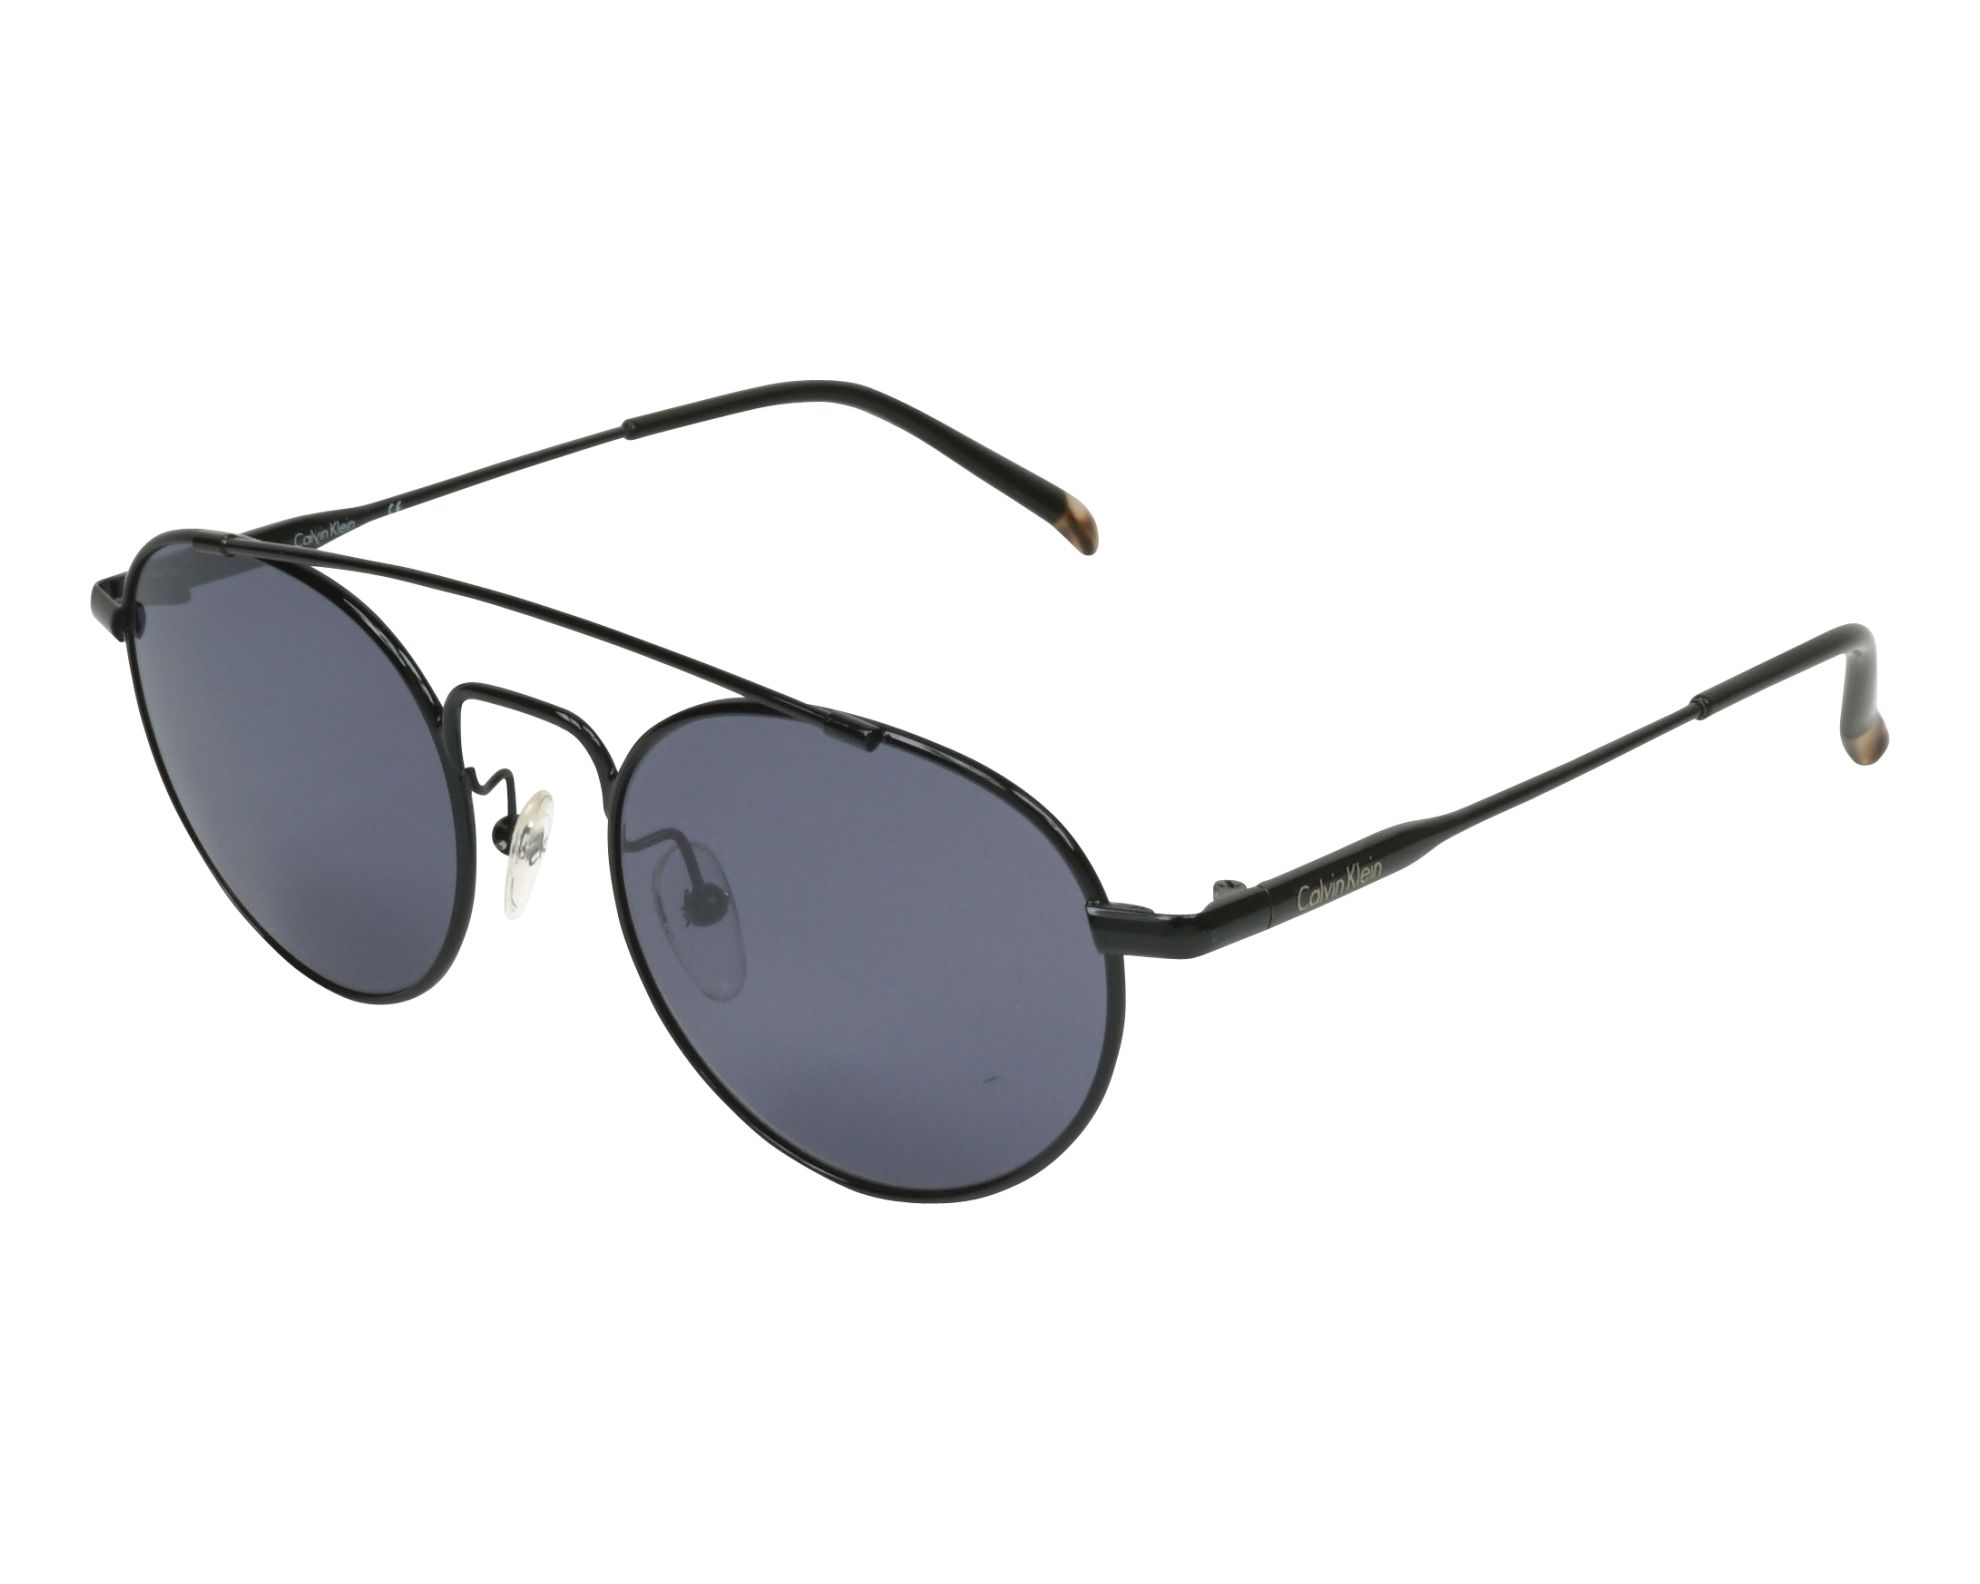 Sunglasses Calvin Klein CK-2148-S 001 51-19 Black profile view